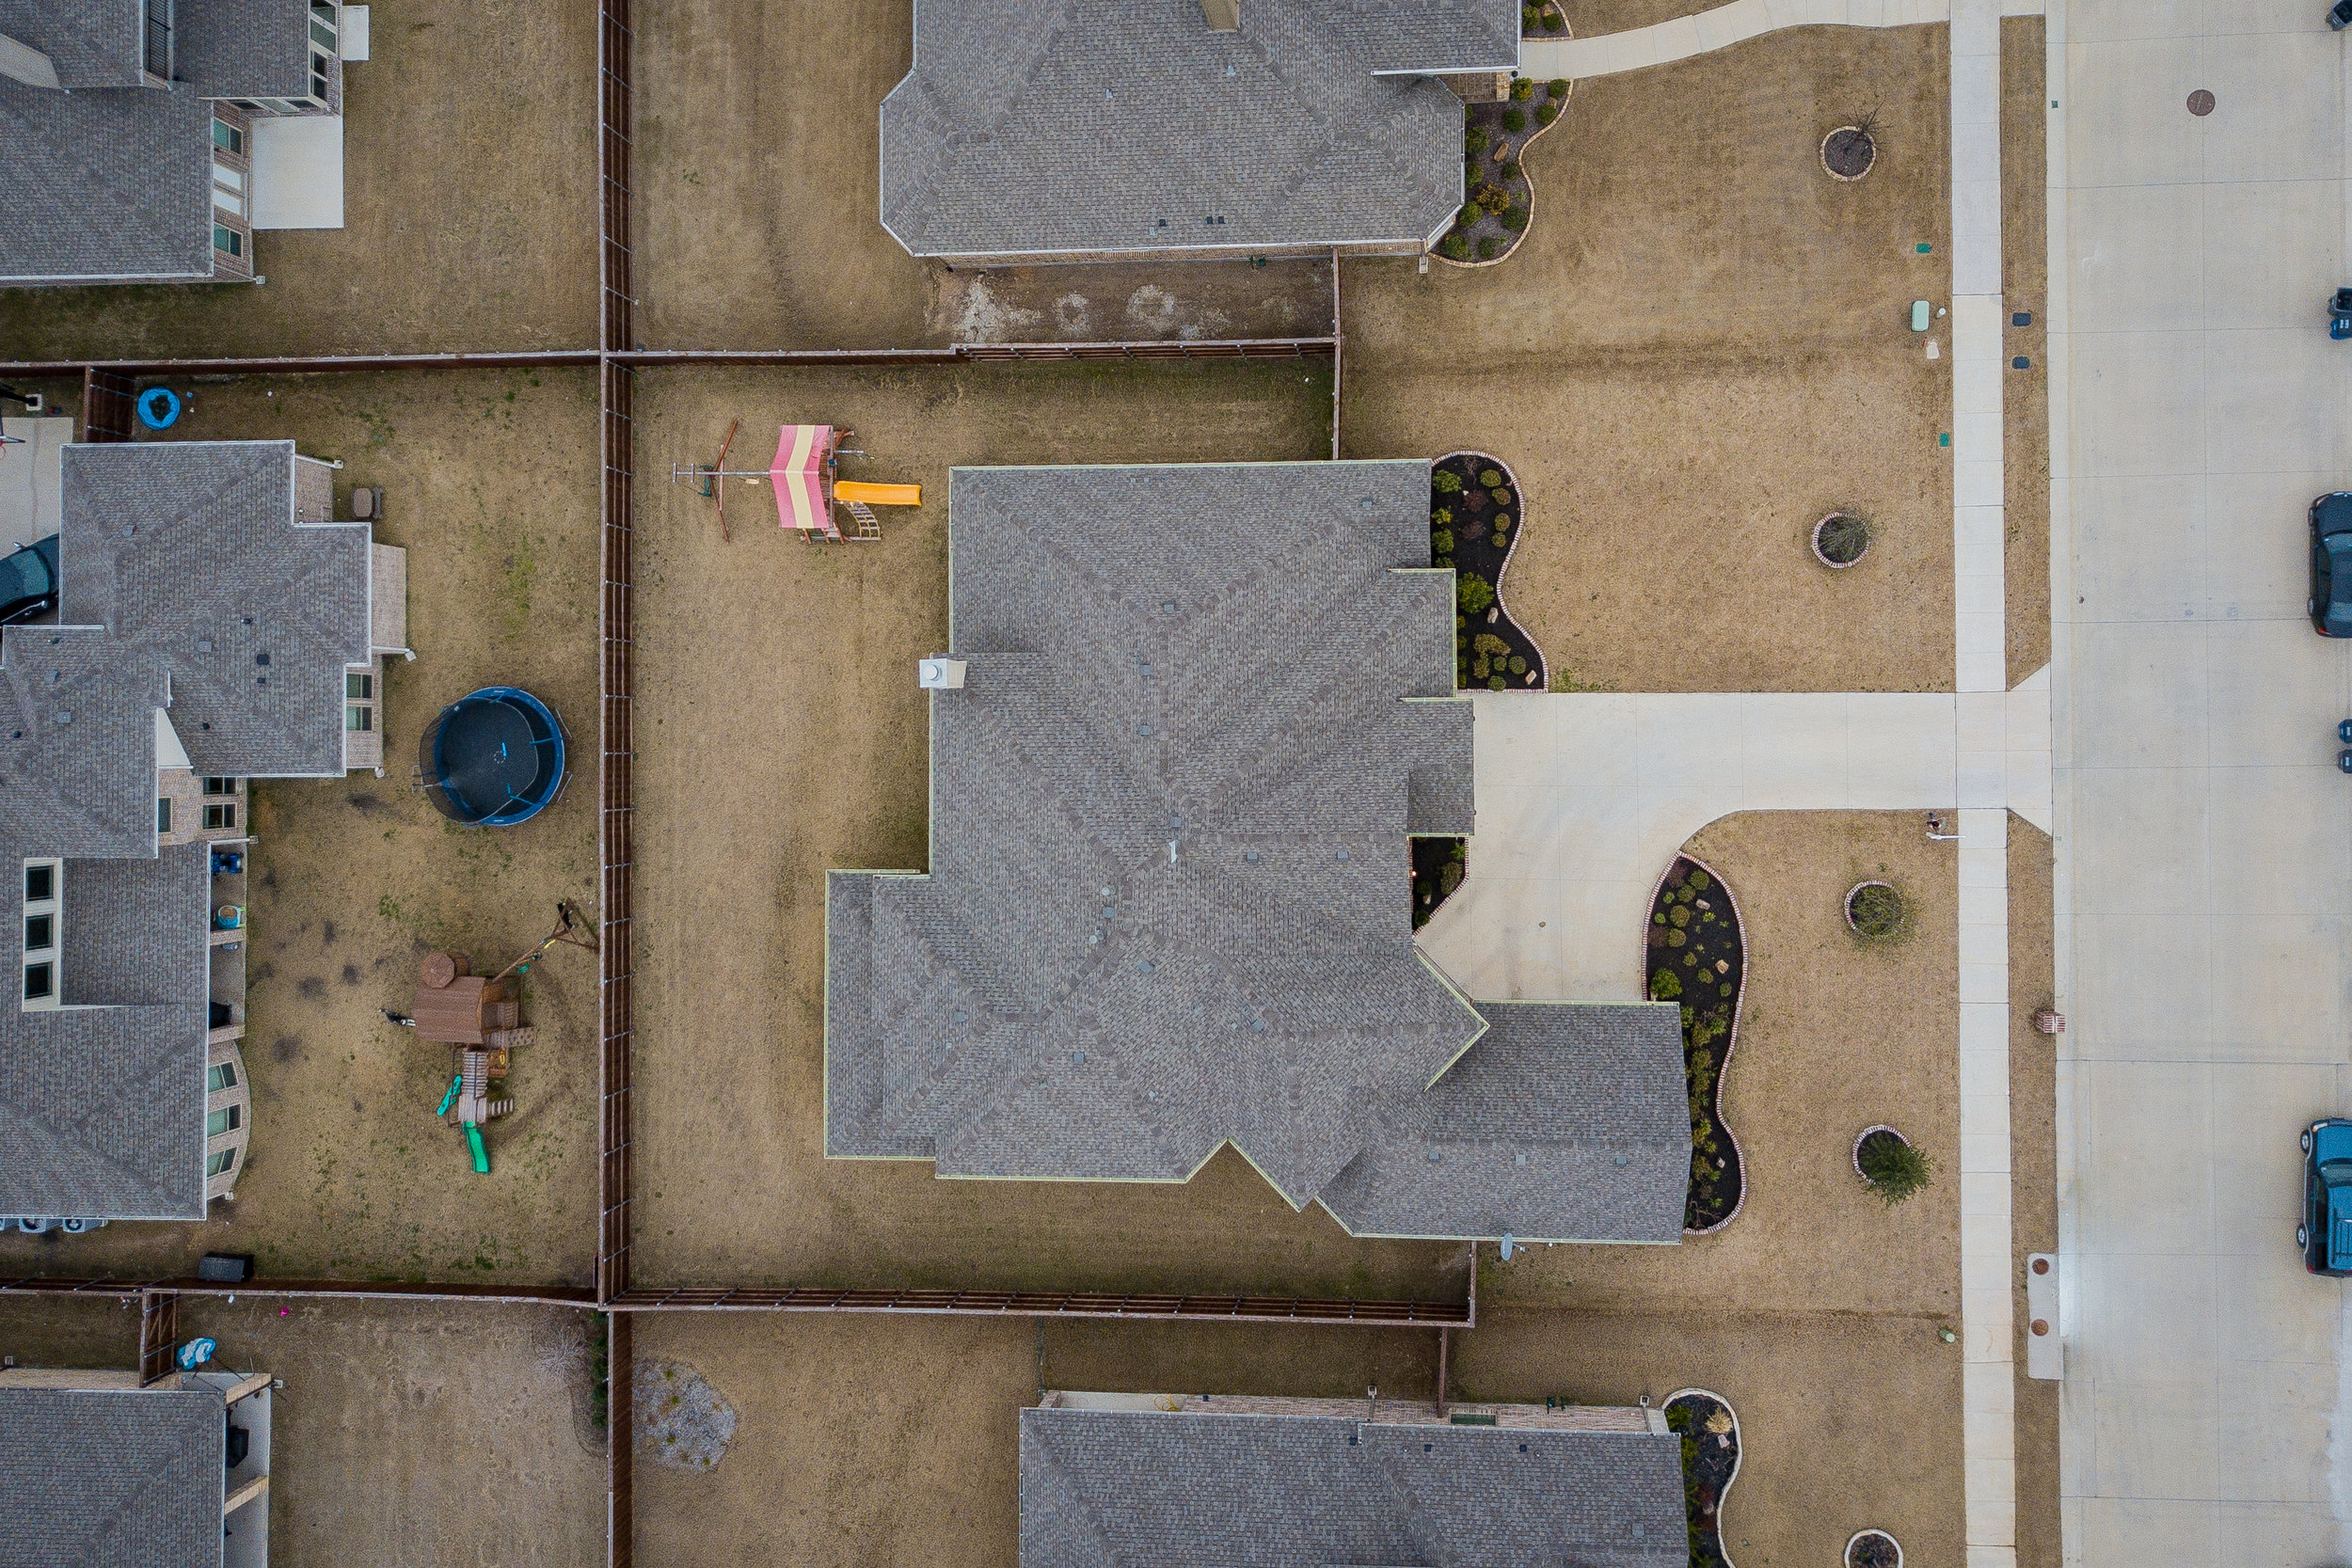 Aerial only$150 - A view from above showing acreage, and amenities.